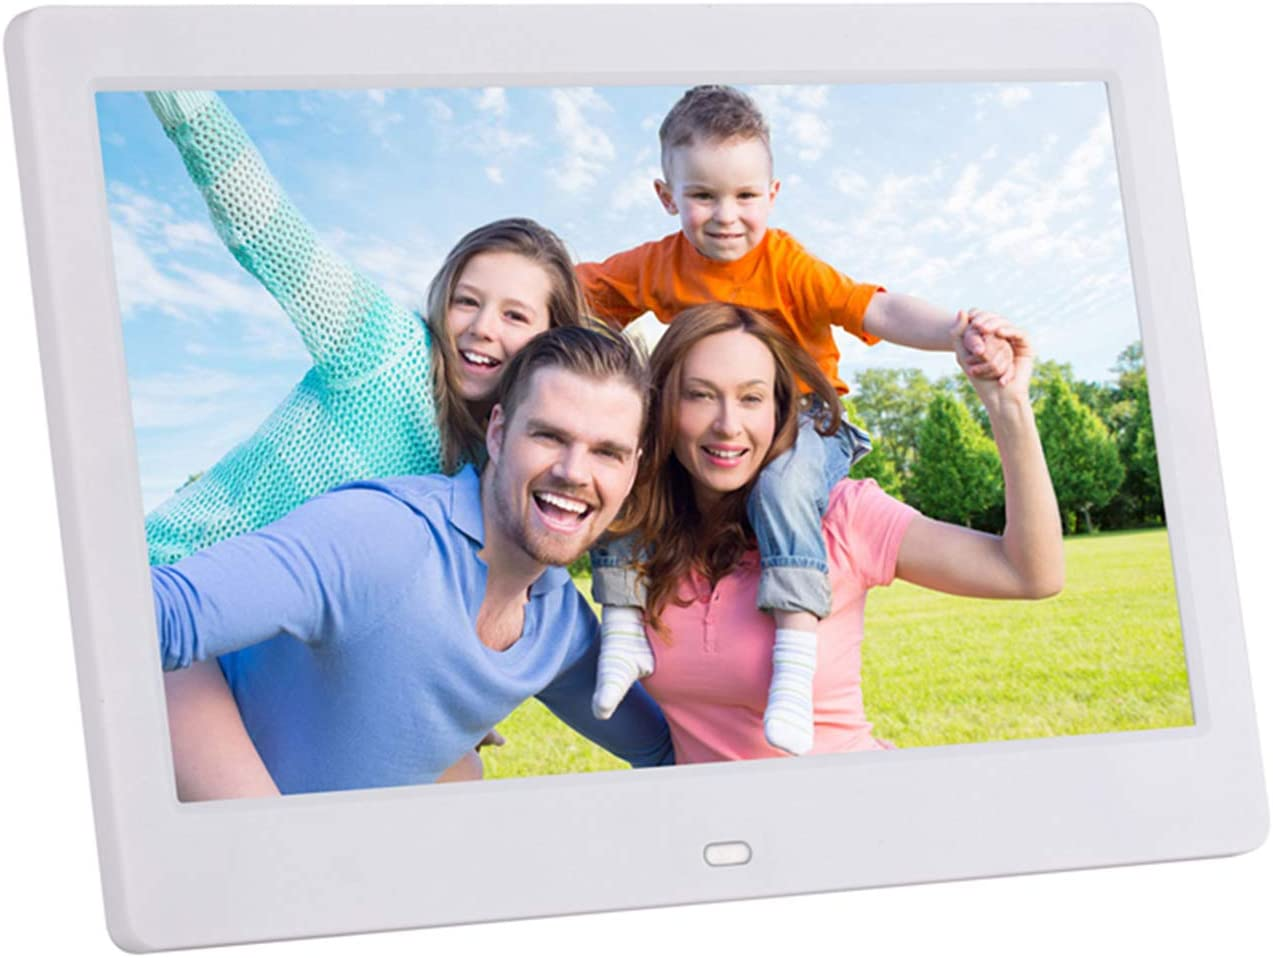 ACOWSUN Digital Picture Frame 15 Inch HD 1280X800 Plastic case Can Play Photos Music Videos When Insert Photo Frames USB SD with Remote Control and 4G SD Card Include